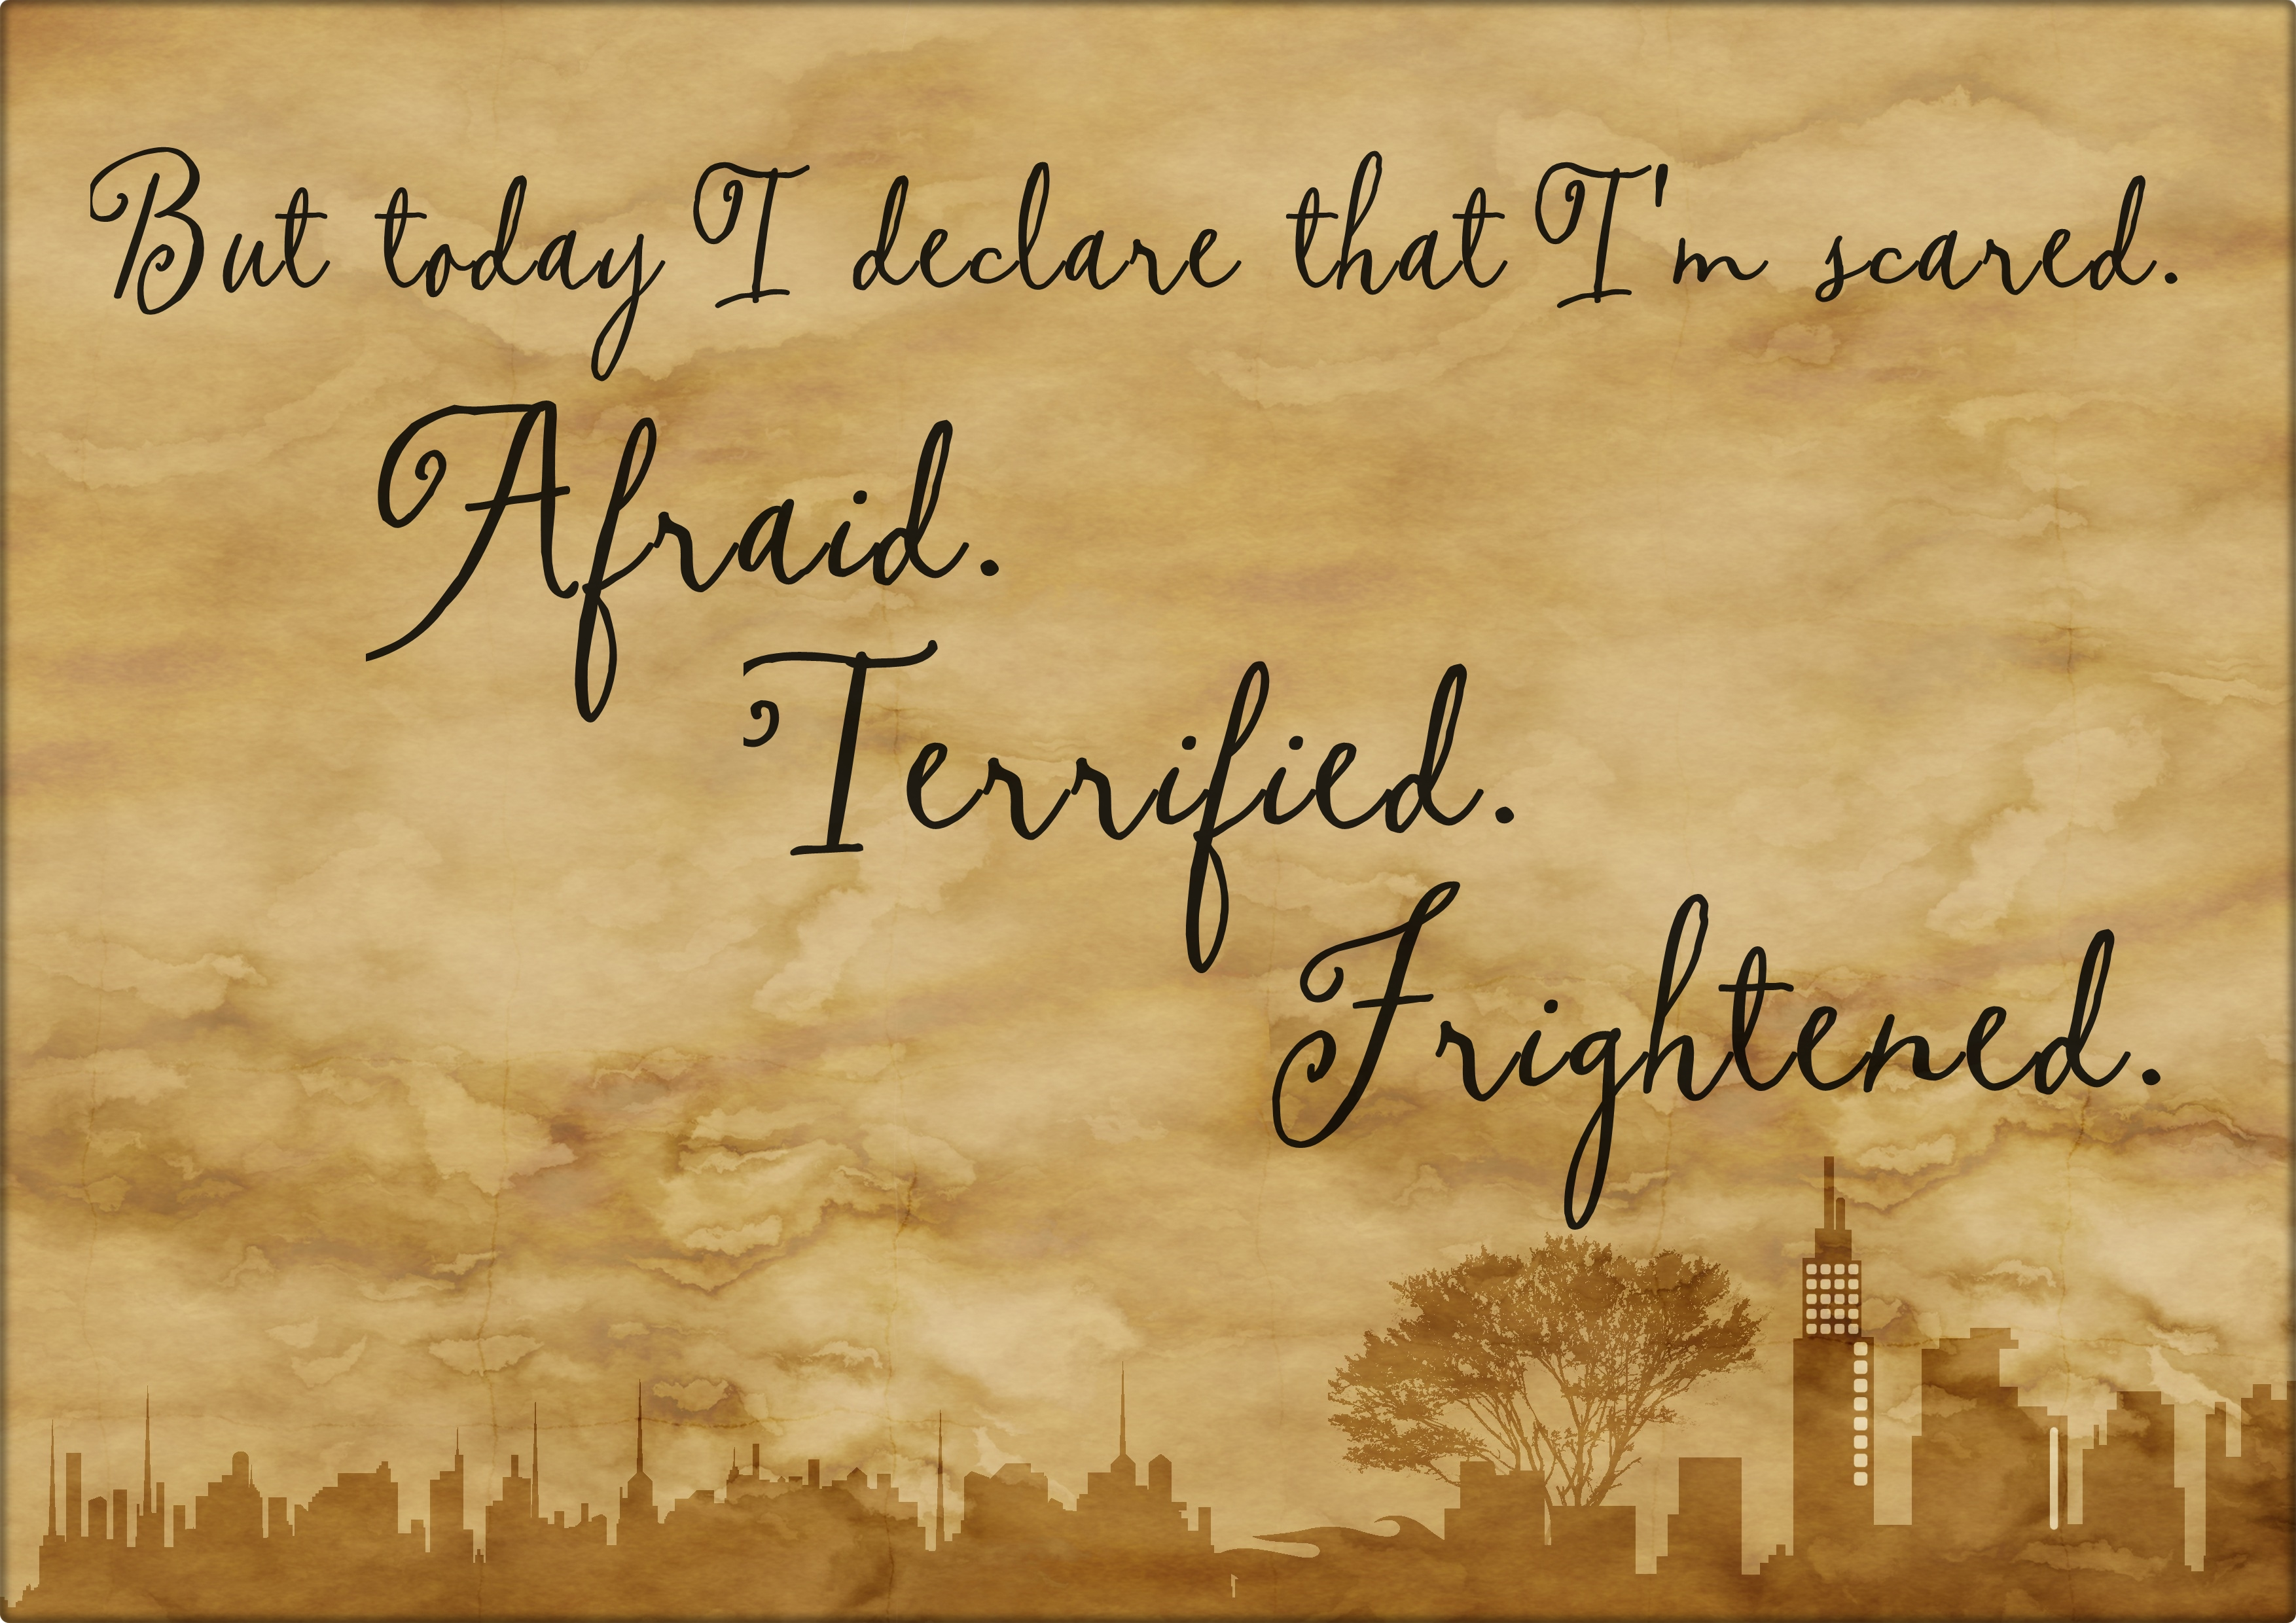 But today I declare that I'm scared - afraid - terrified - frightened - readingruffolos